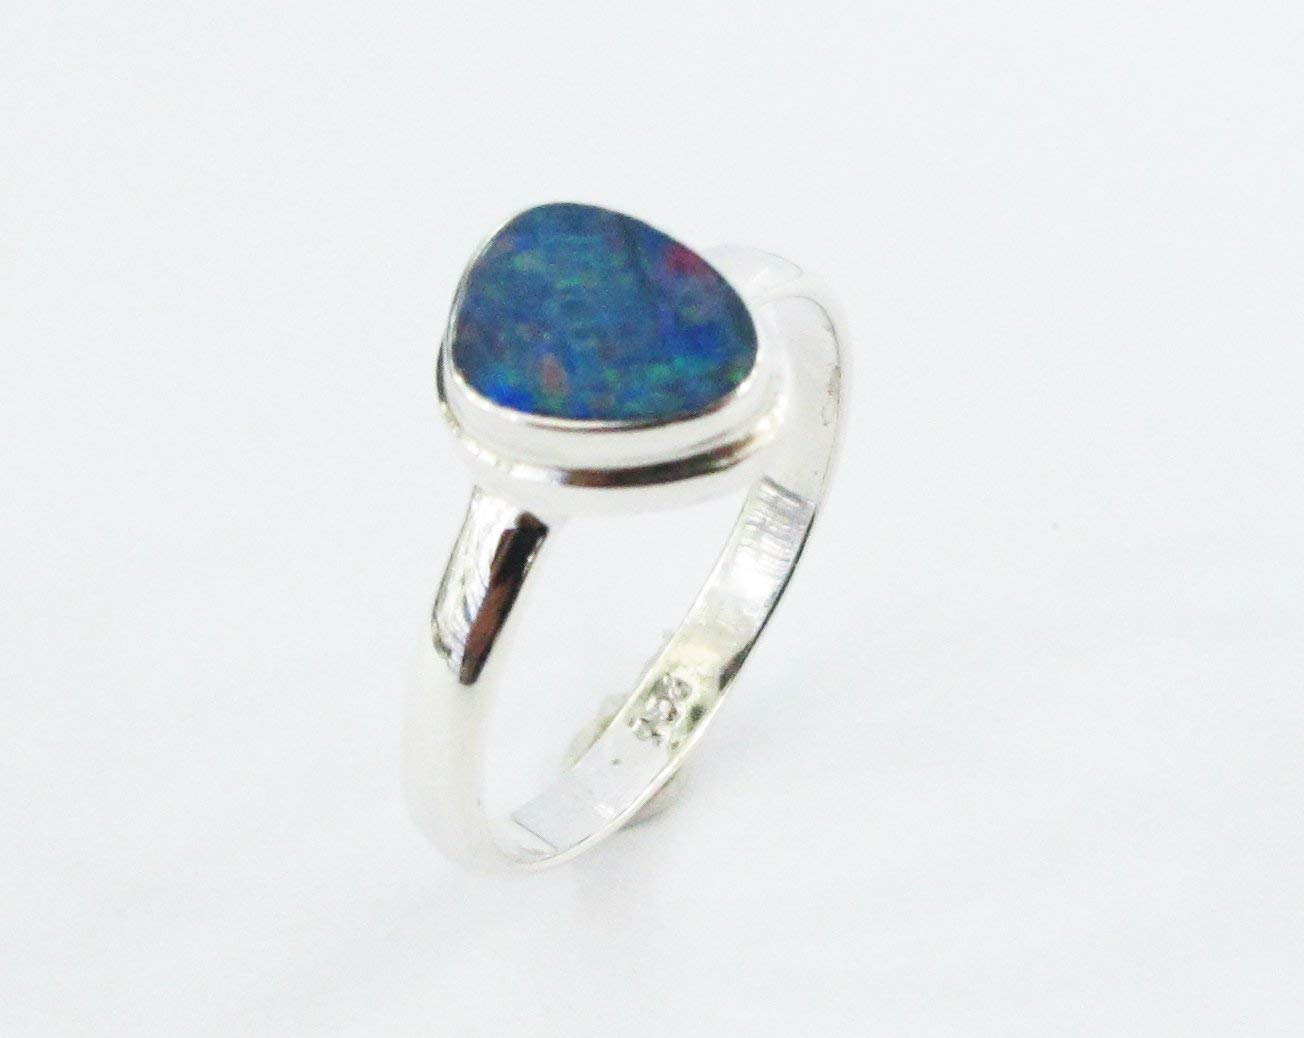 c5f30b633d76b Cheap Opal Ring Size 8, find Opal Ring Size 8 deals on line at ...